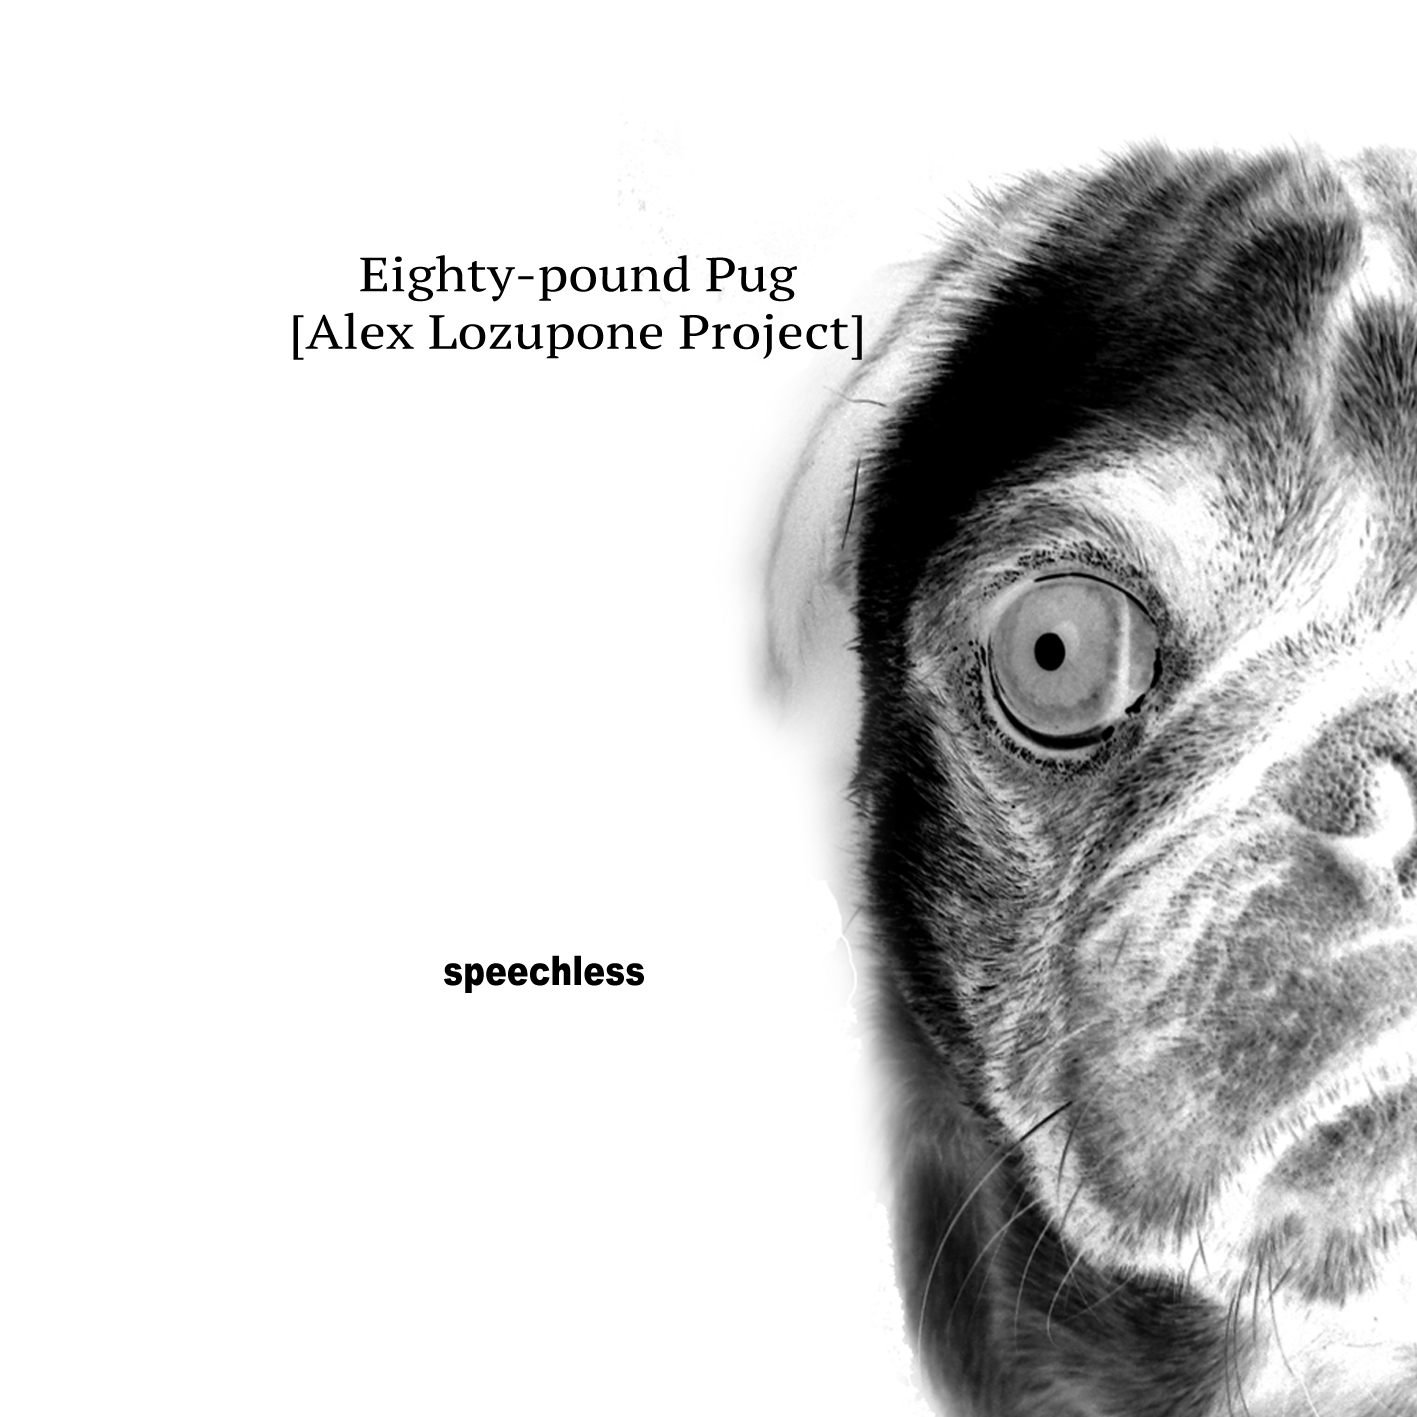 Gapplegate Guitar And Bass Blog Eighty Pound Pug Speechless Alex